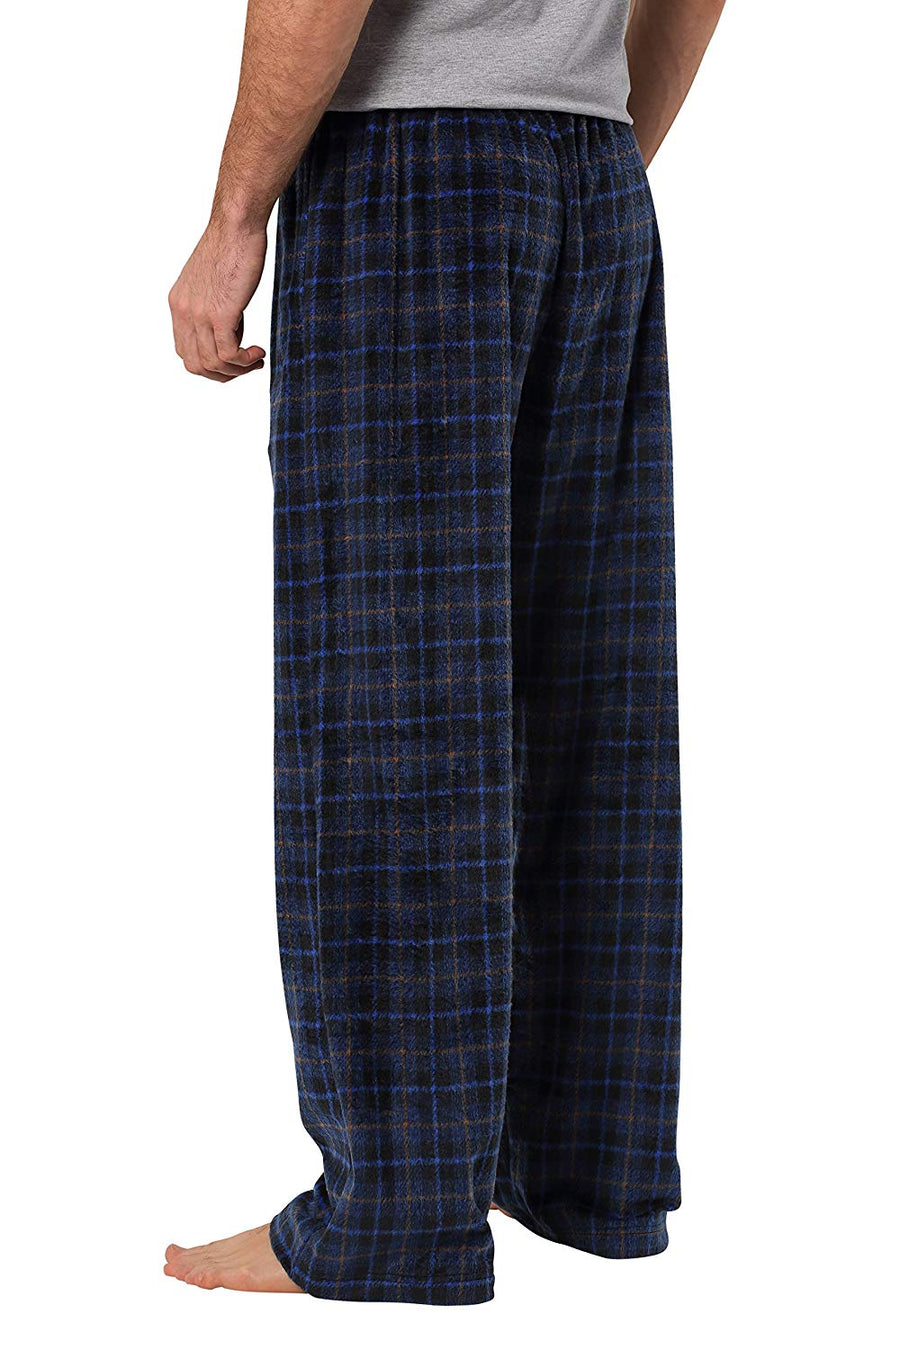 CYZ Men's Fleece Pajama Pant